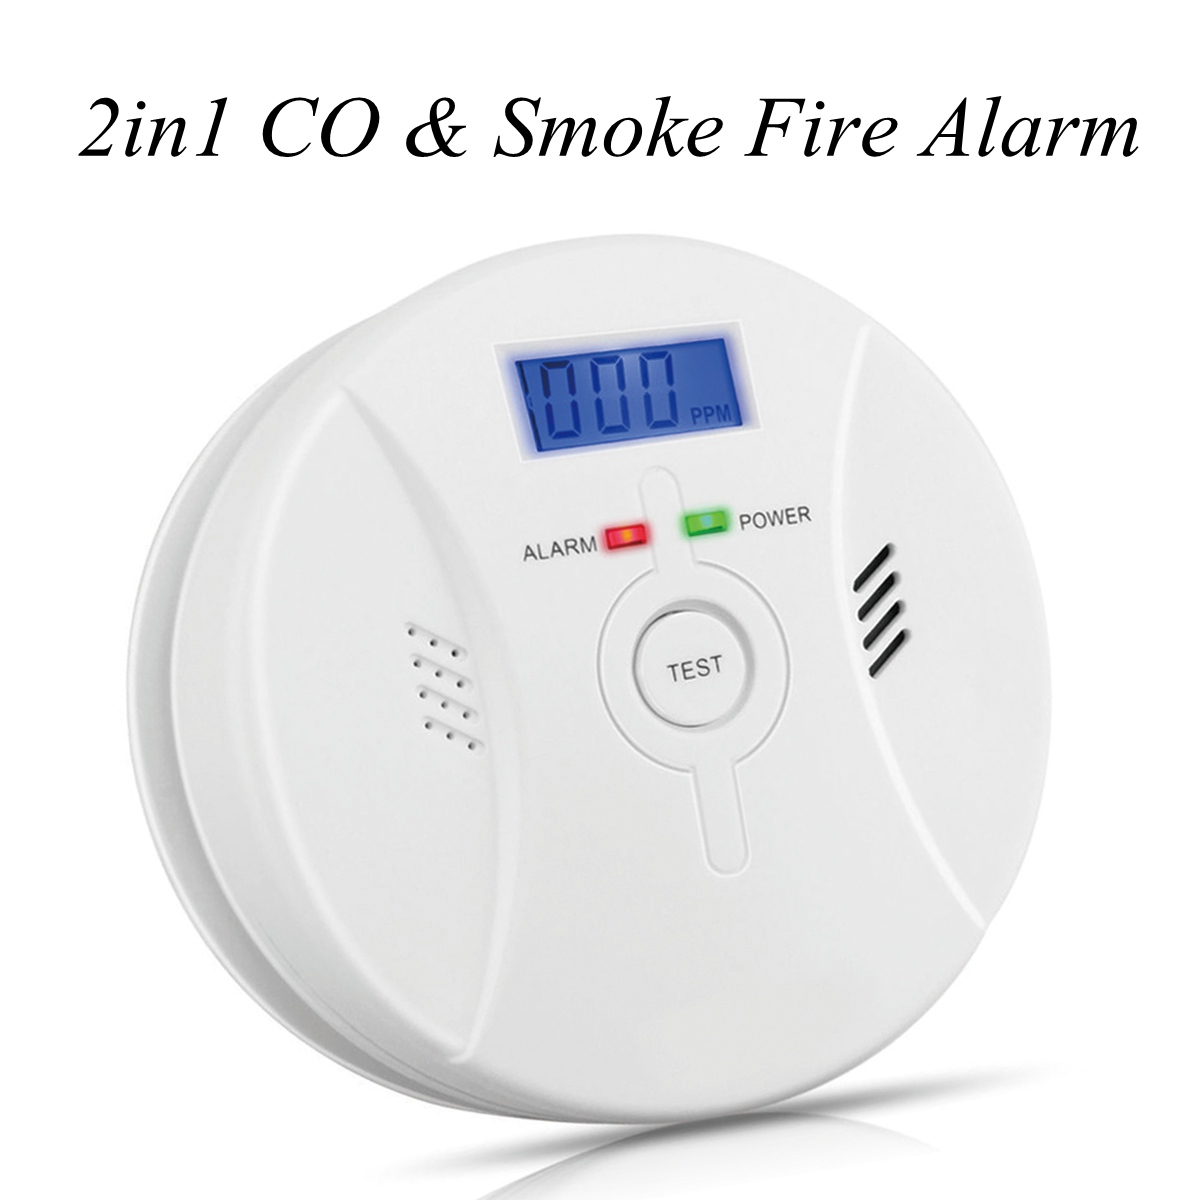 CO Smoke Detector Combor,Carbon Monoxide Detector and Smoke Alarm Battery Operated and Voice Warning